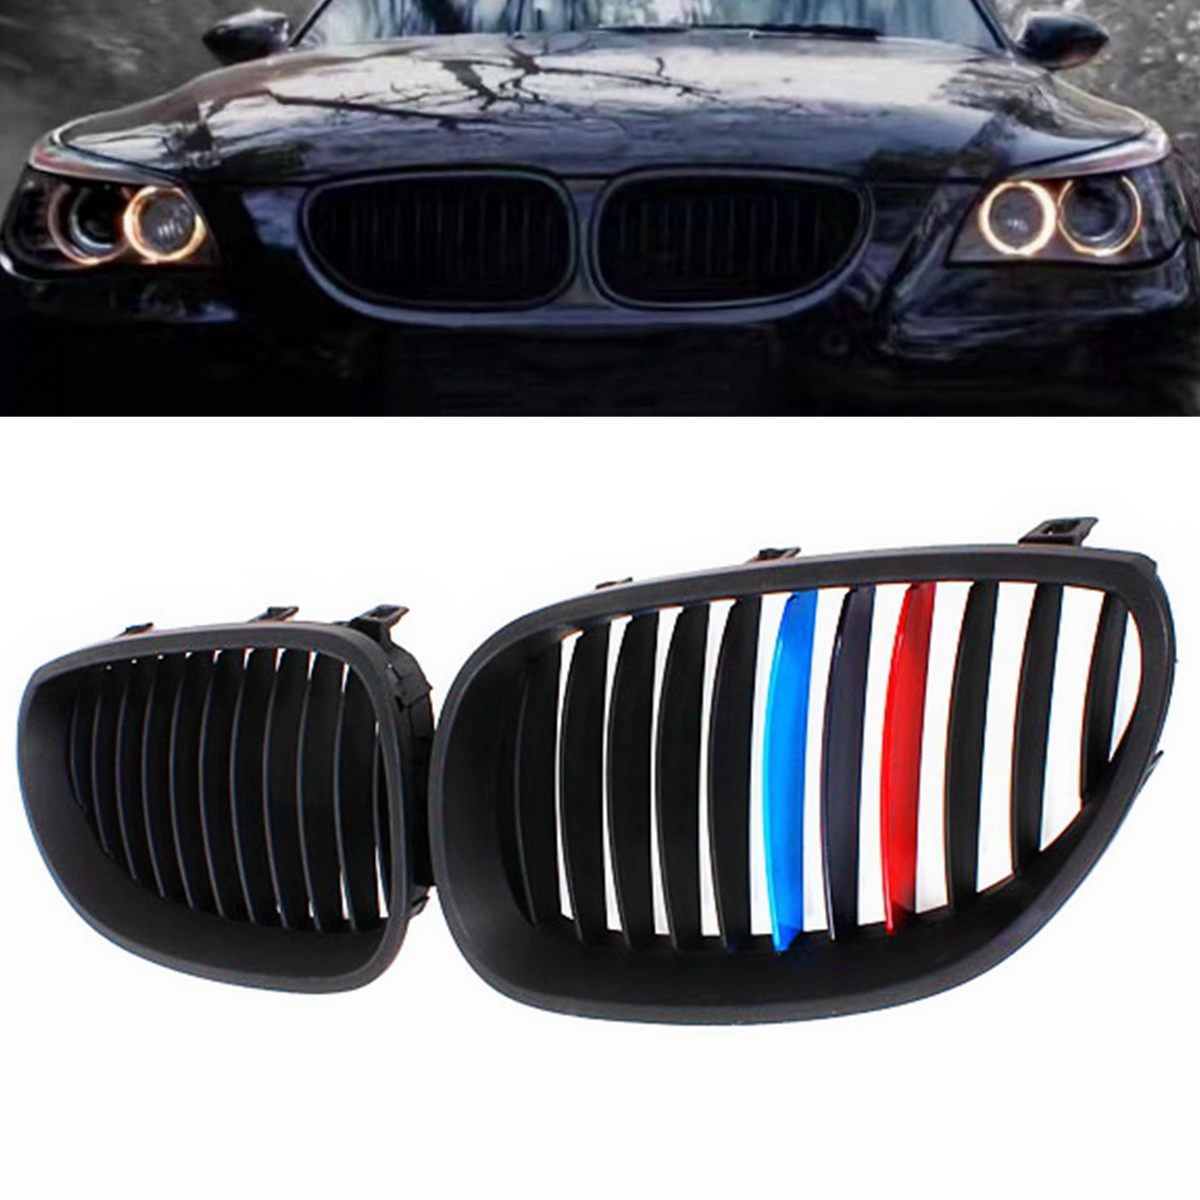 1Pair Car Front Gloss M-color Kidney Grill Grille For BMW E60 E61 Touring 5 Series 540i 530i 528i Sedan 2003 2004 2005-2010 стоимость